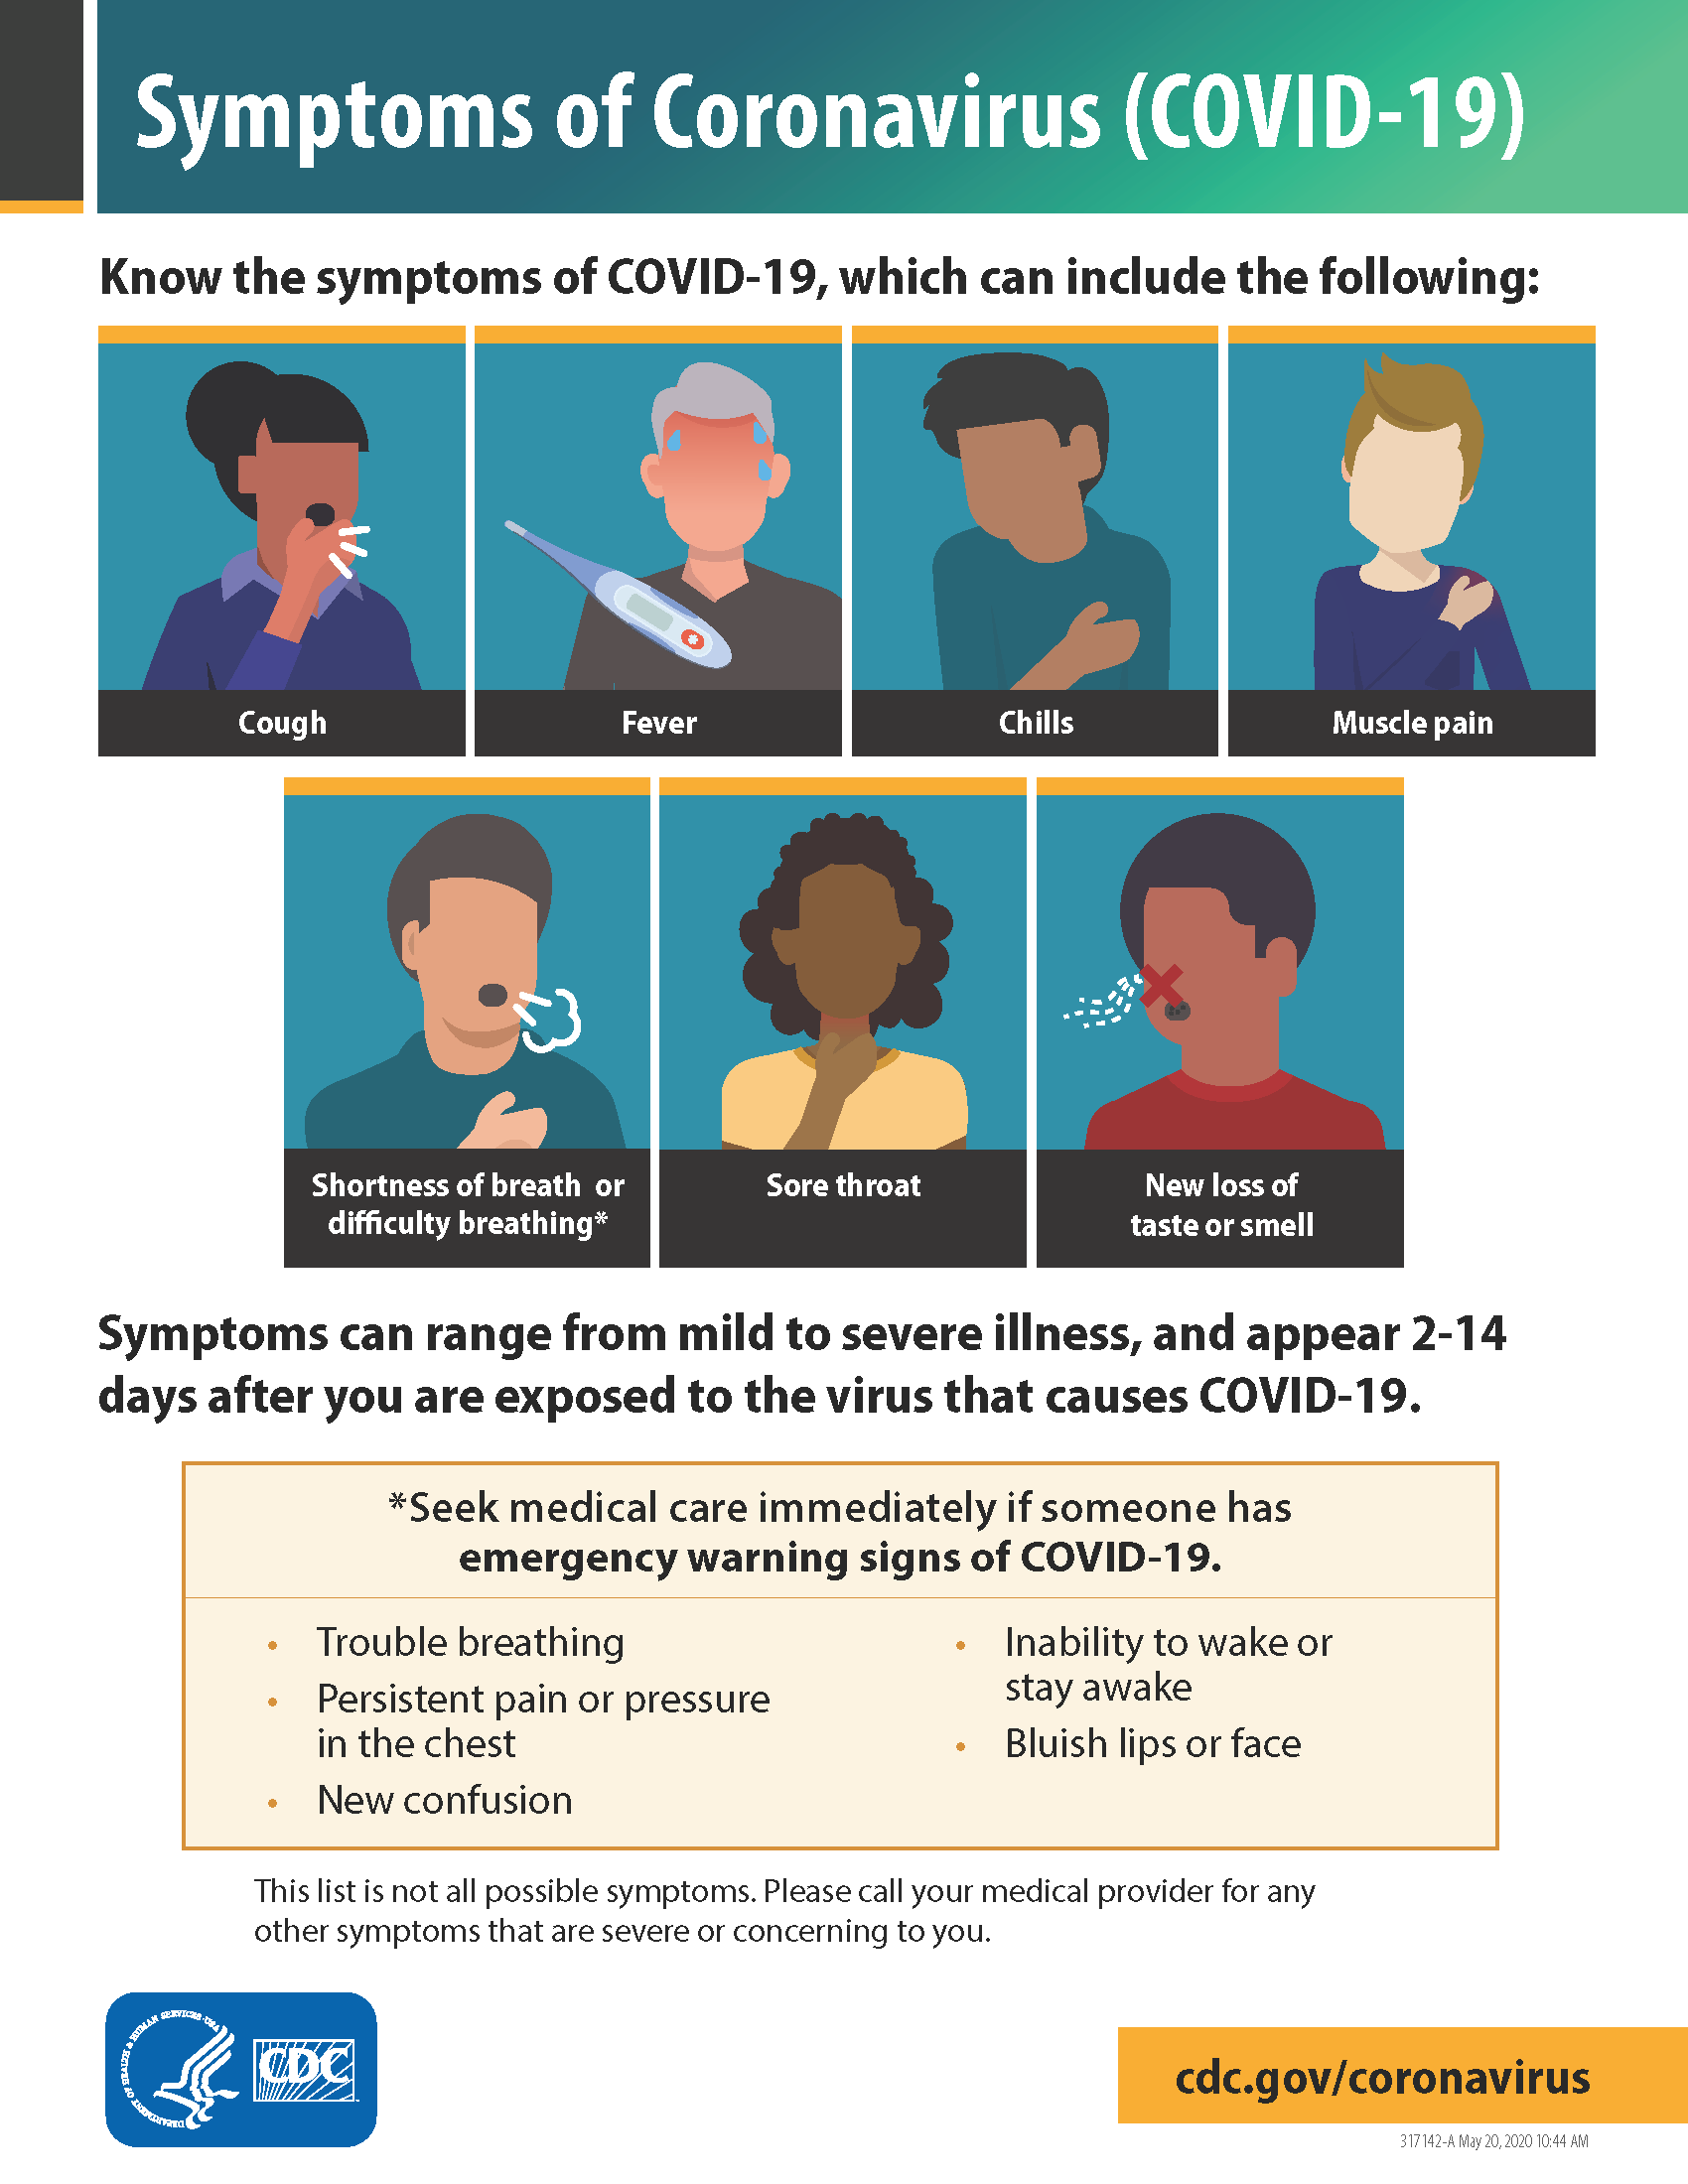 'Symptoms of Coronavirus (COVID-19)'. Infographic lists 7 possible symptoms and 5 emergency warning signs requiring immediate medical care.